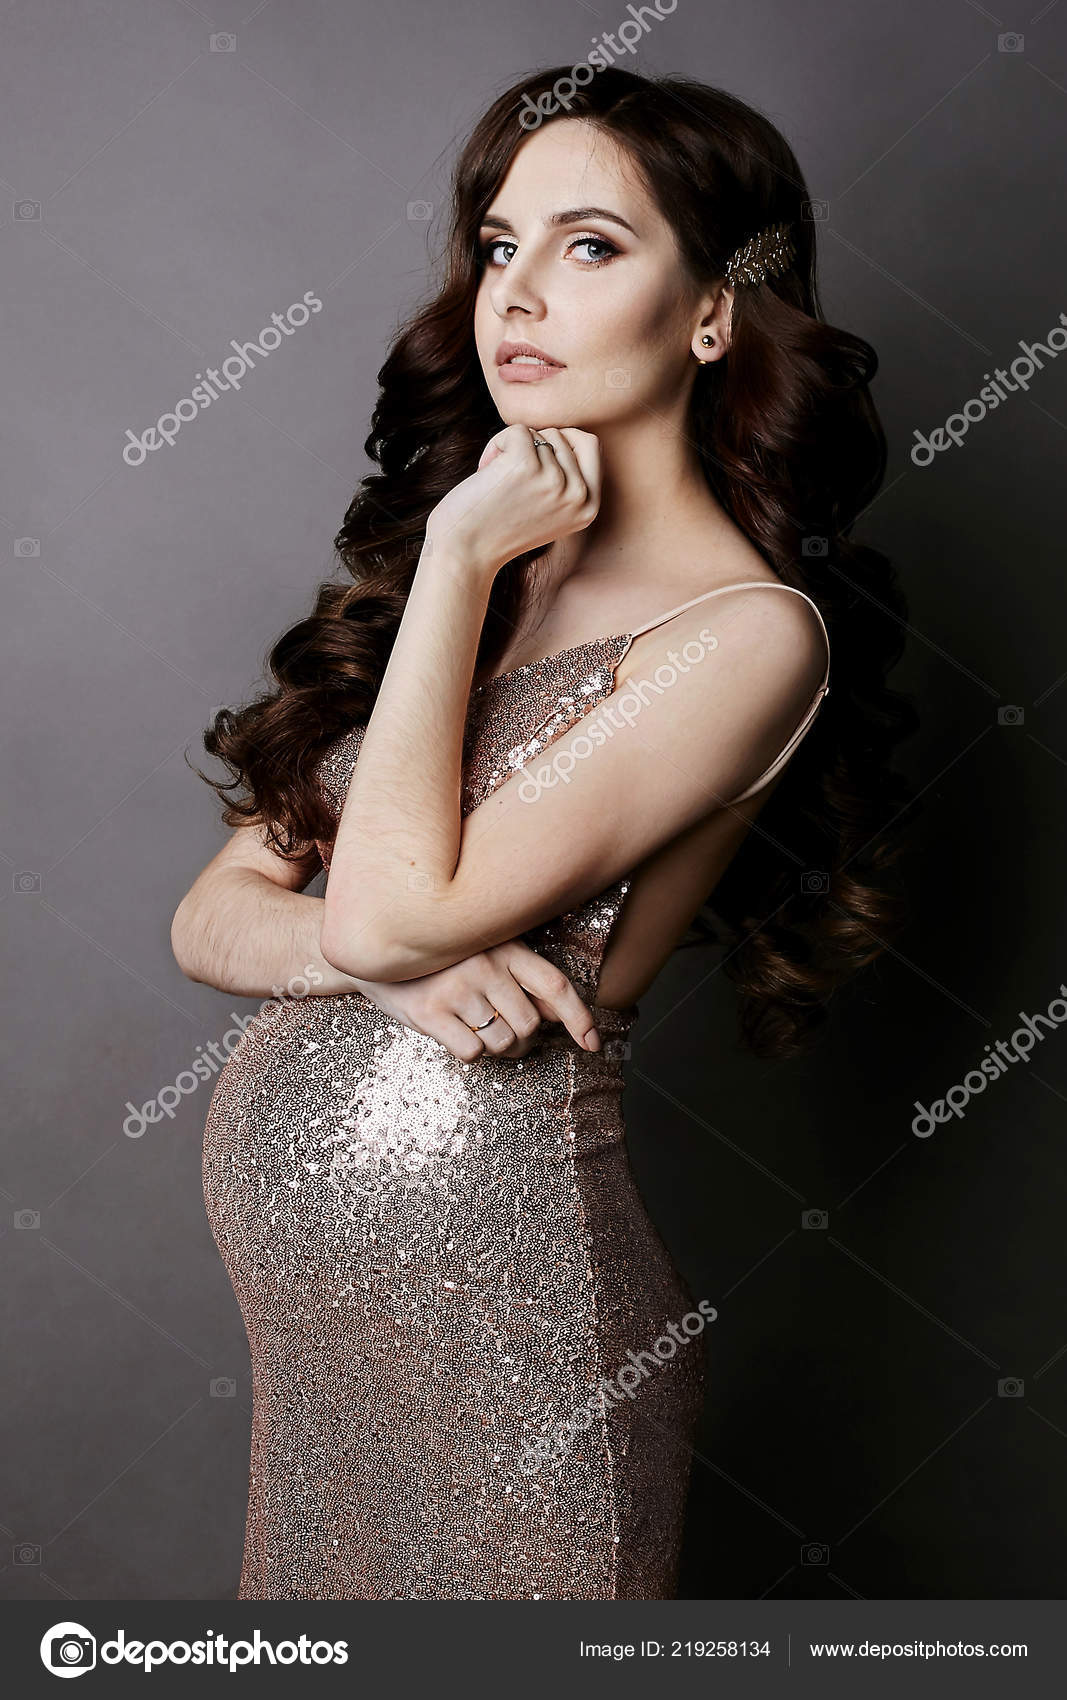 eb2c6014cd20c Fashionable and pregnant brunette model girl with gentle makeup, in the  dress with gold sequins